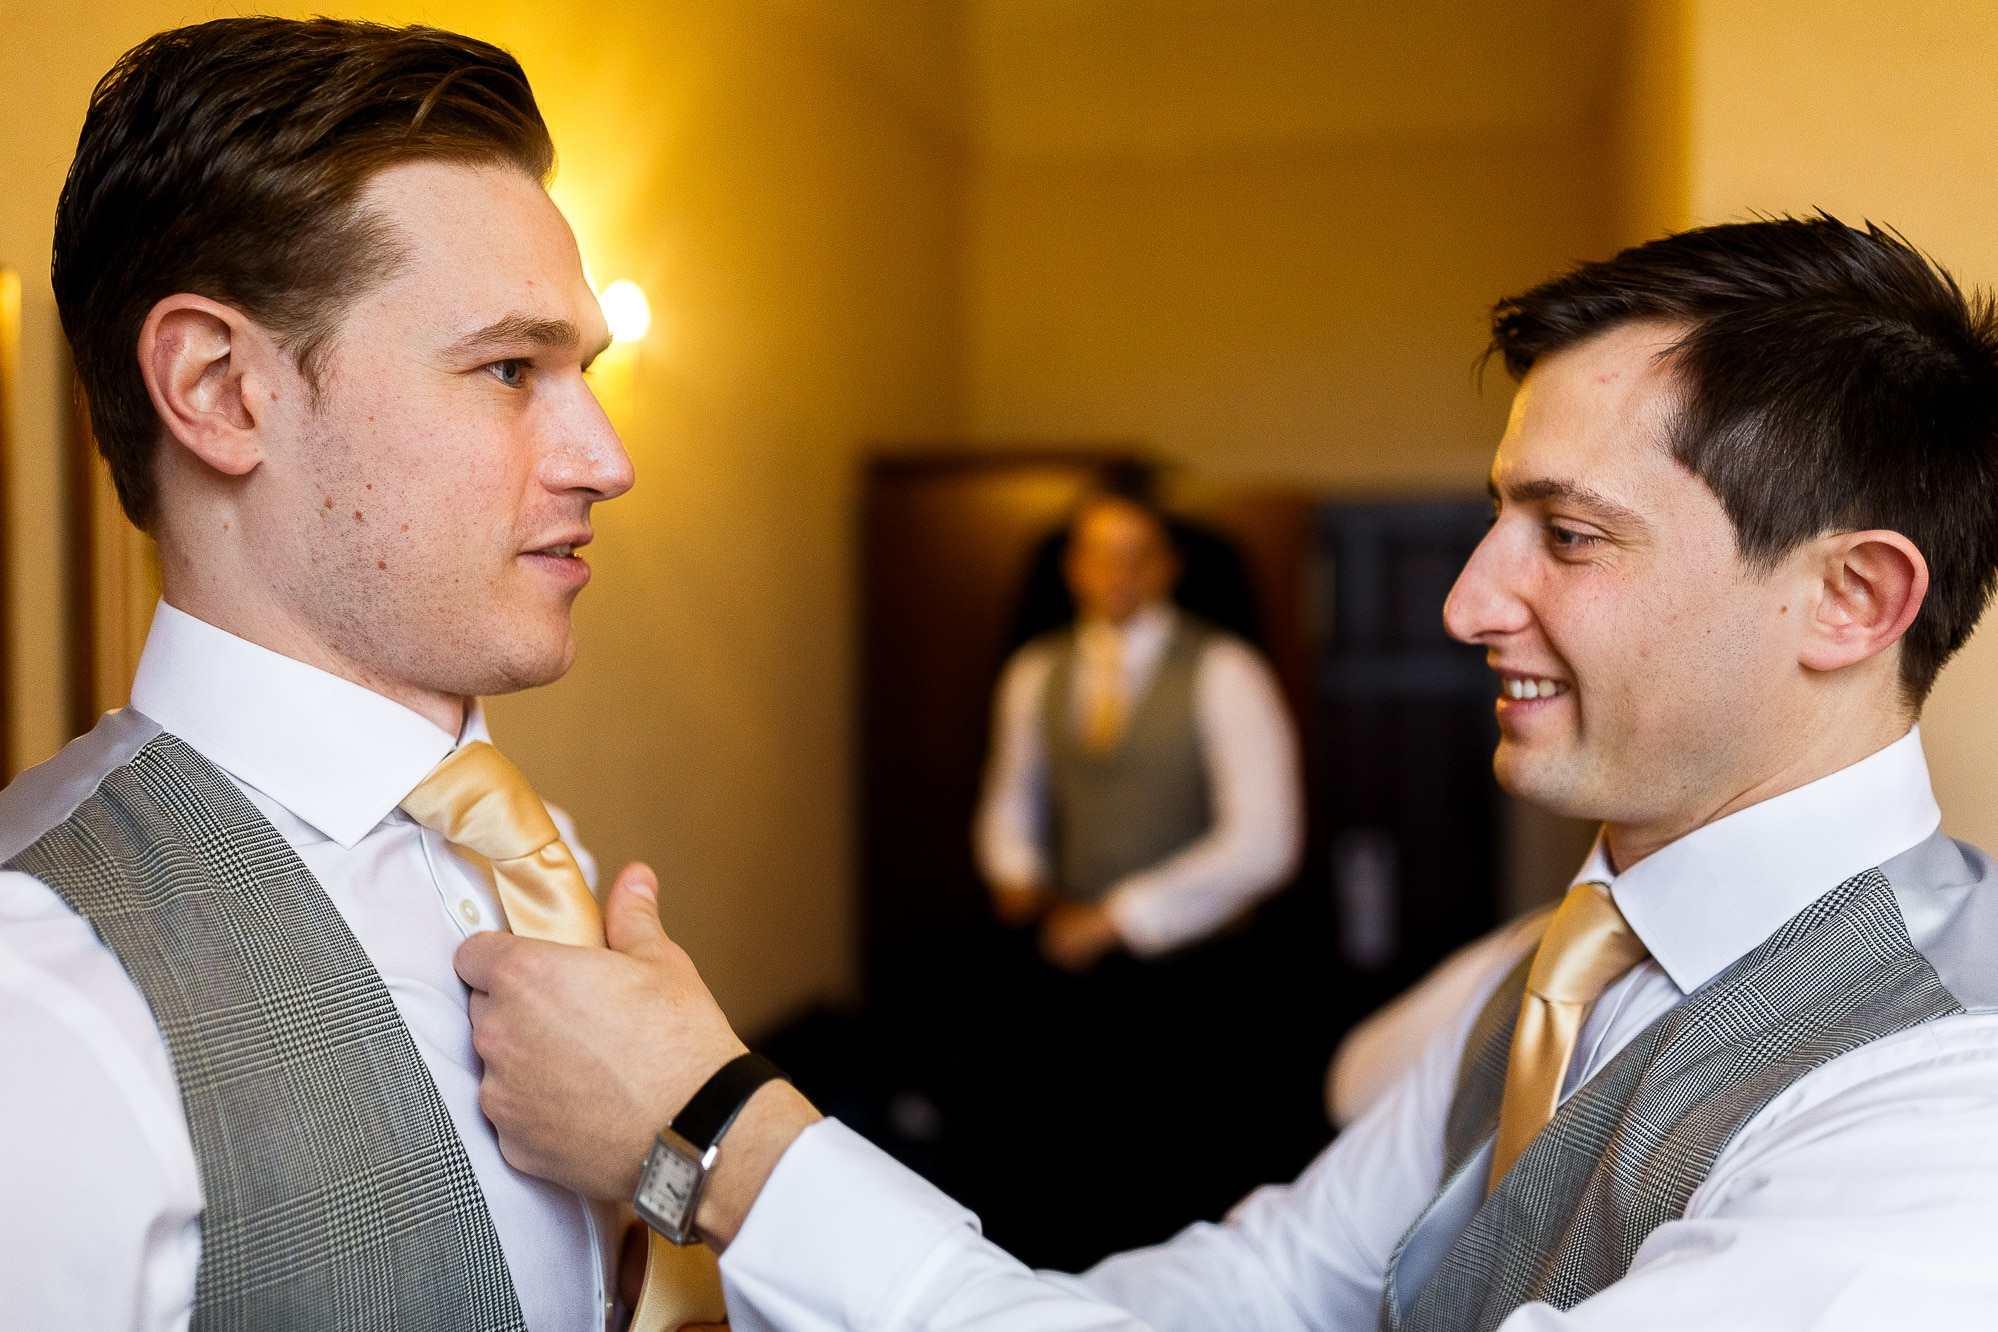 groom having his tie done up